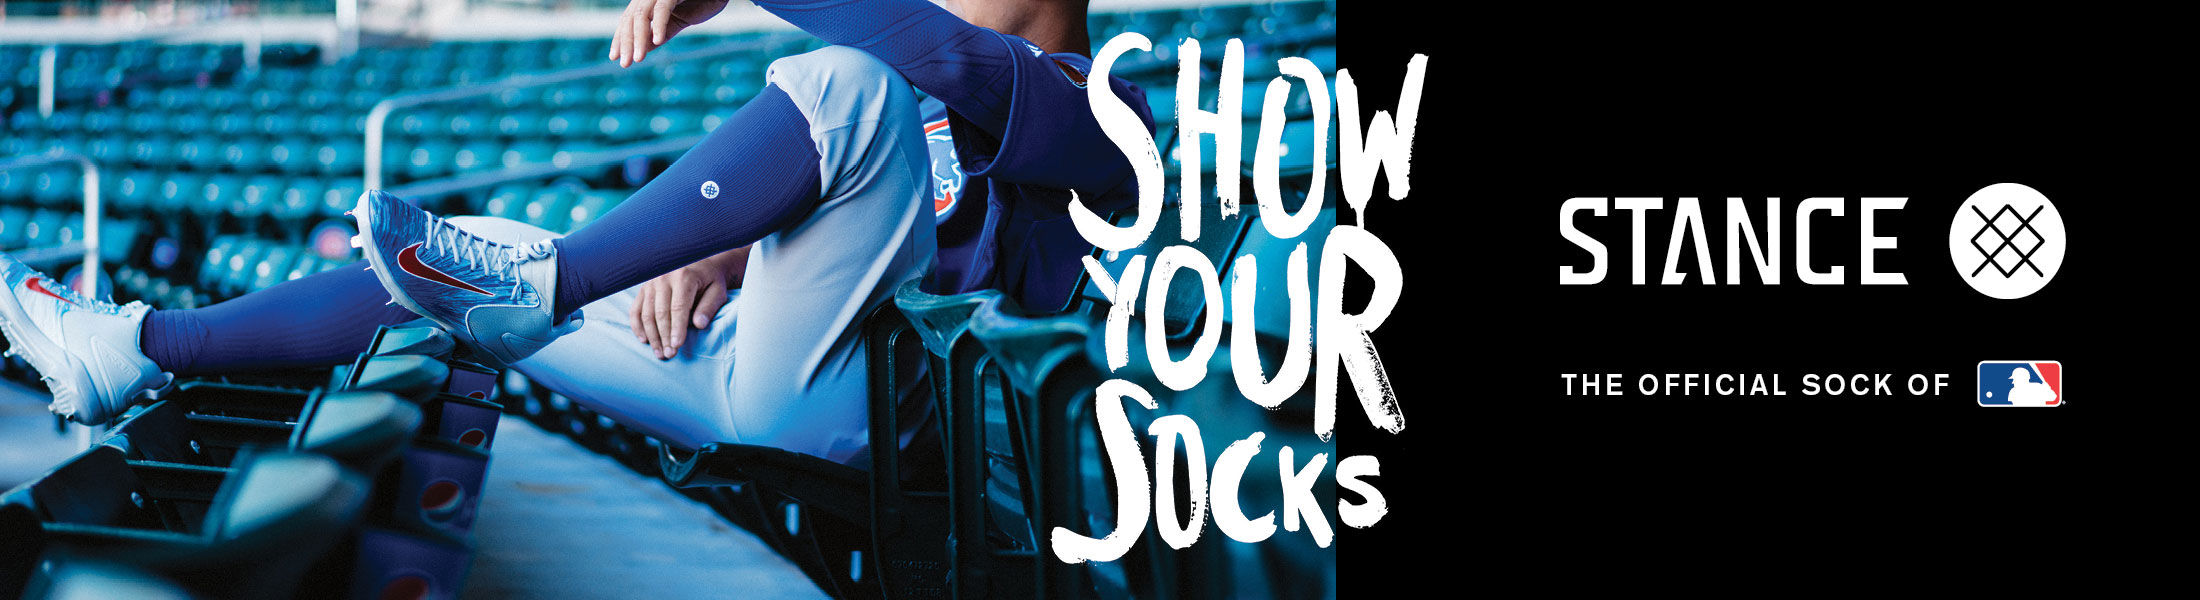 Chicago Cubs Socks by Stance at portsWorldChicago.com